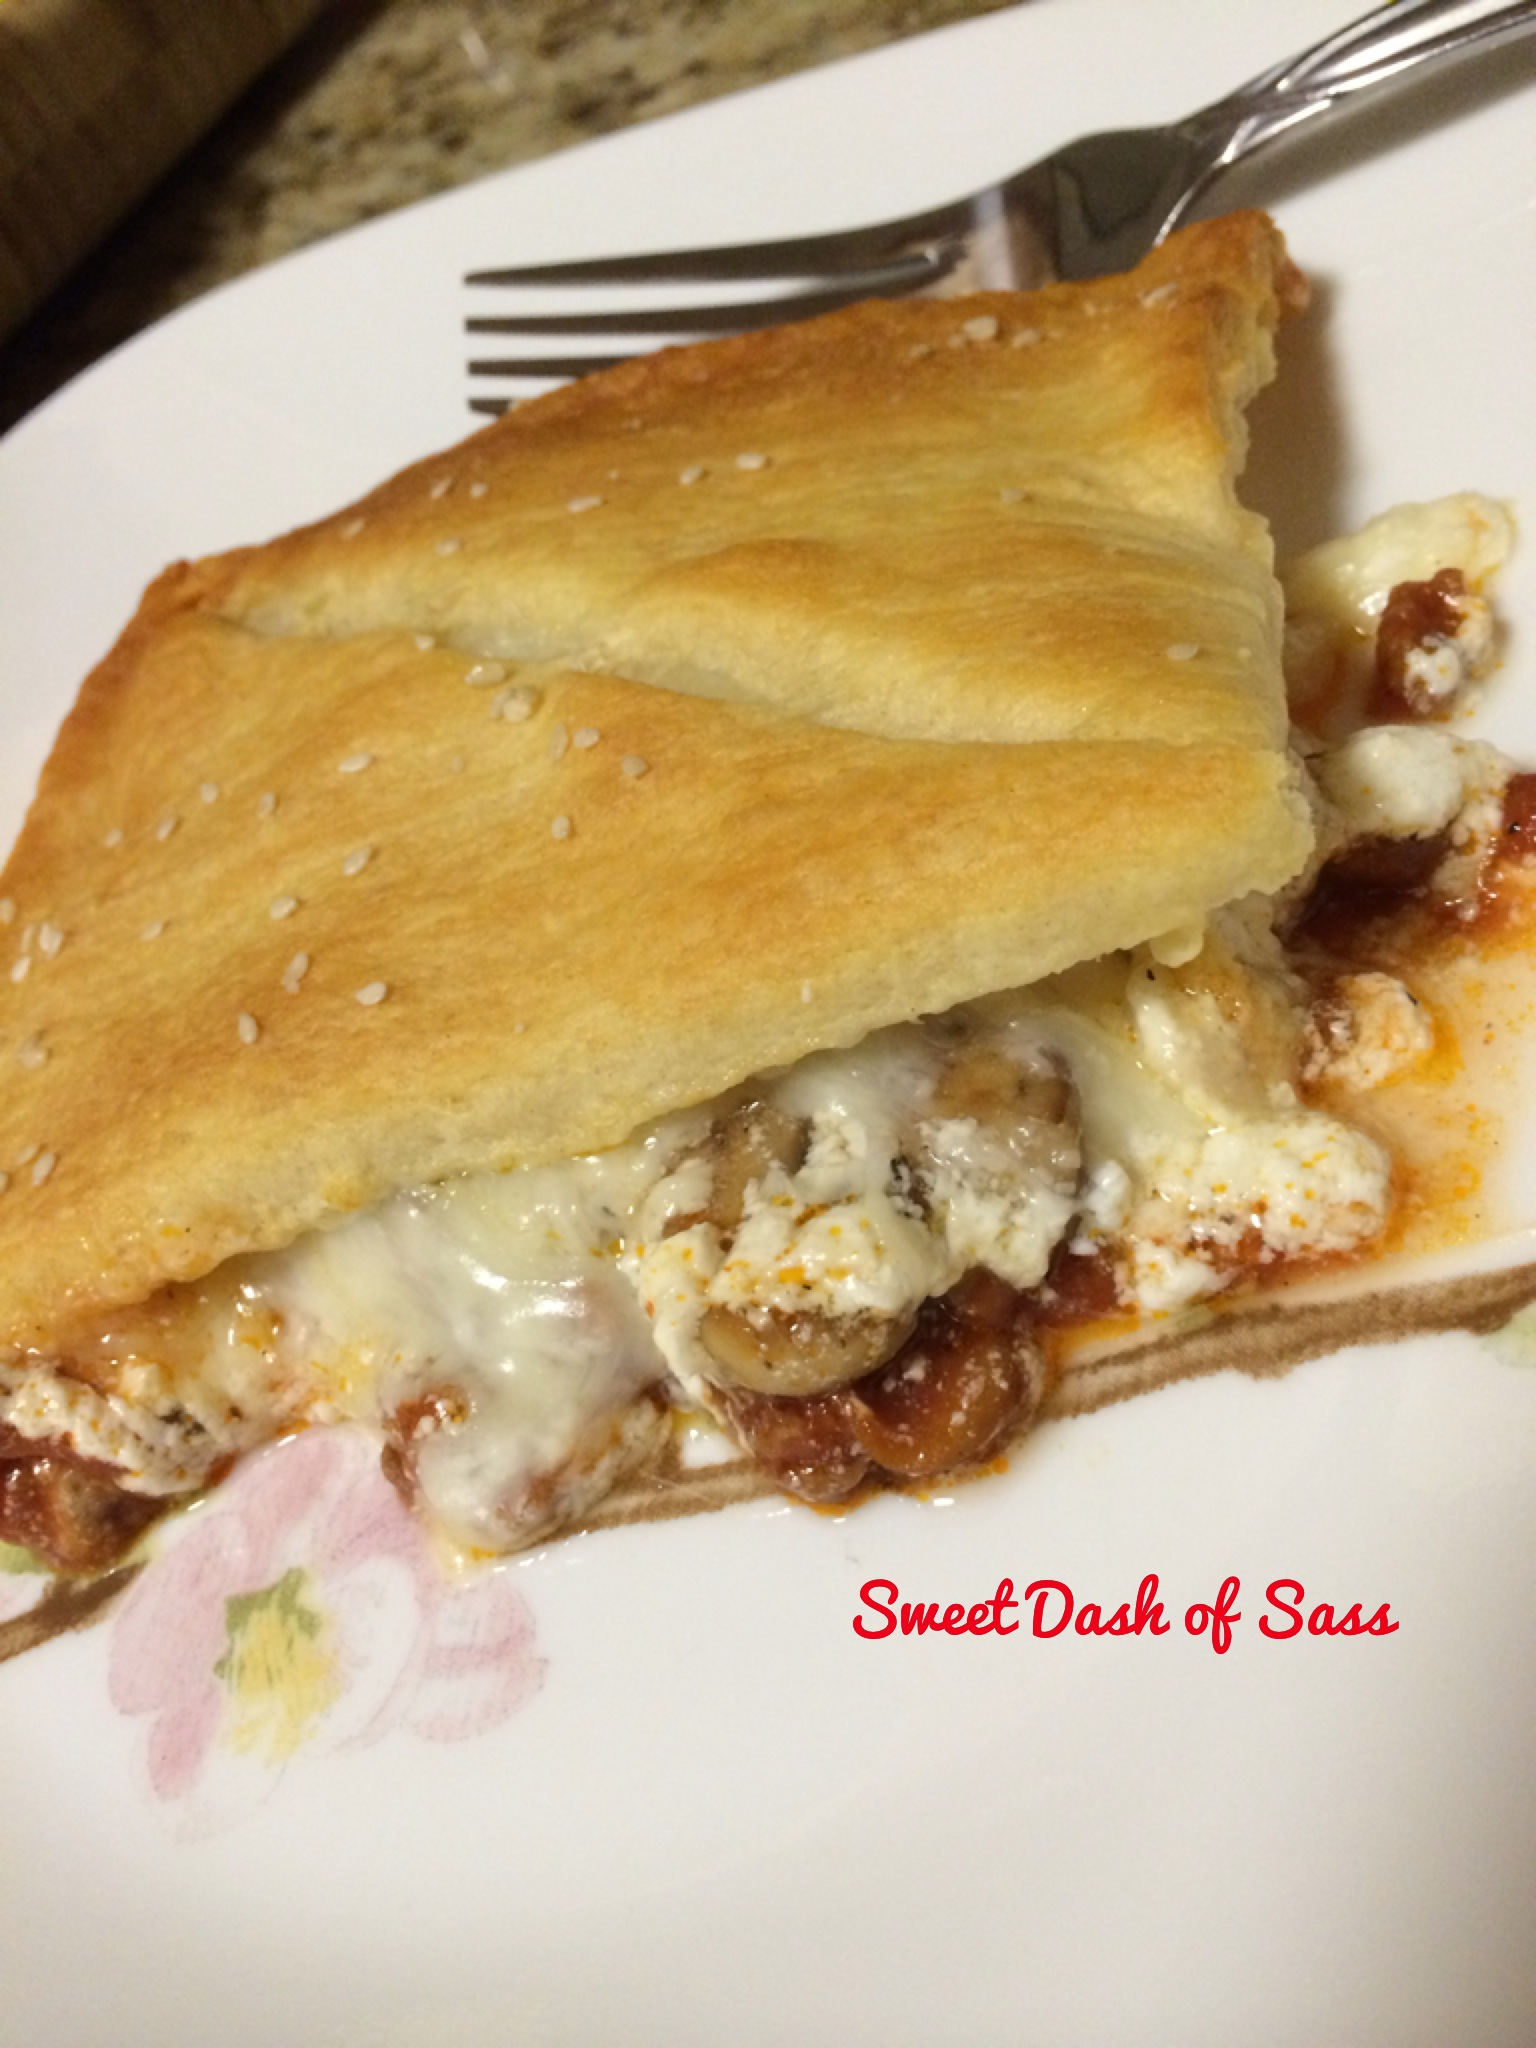 Upside Down Pizza Pie - www.SweetDashofSass.com  Check out and 'LIKE' Sweet Dash of Sass for this recipe and many more!